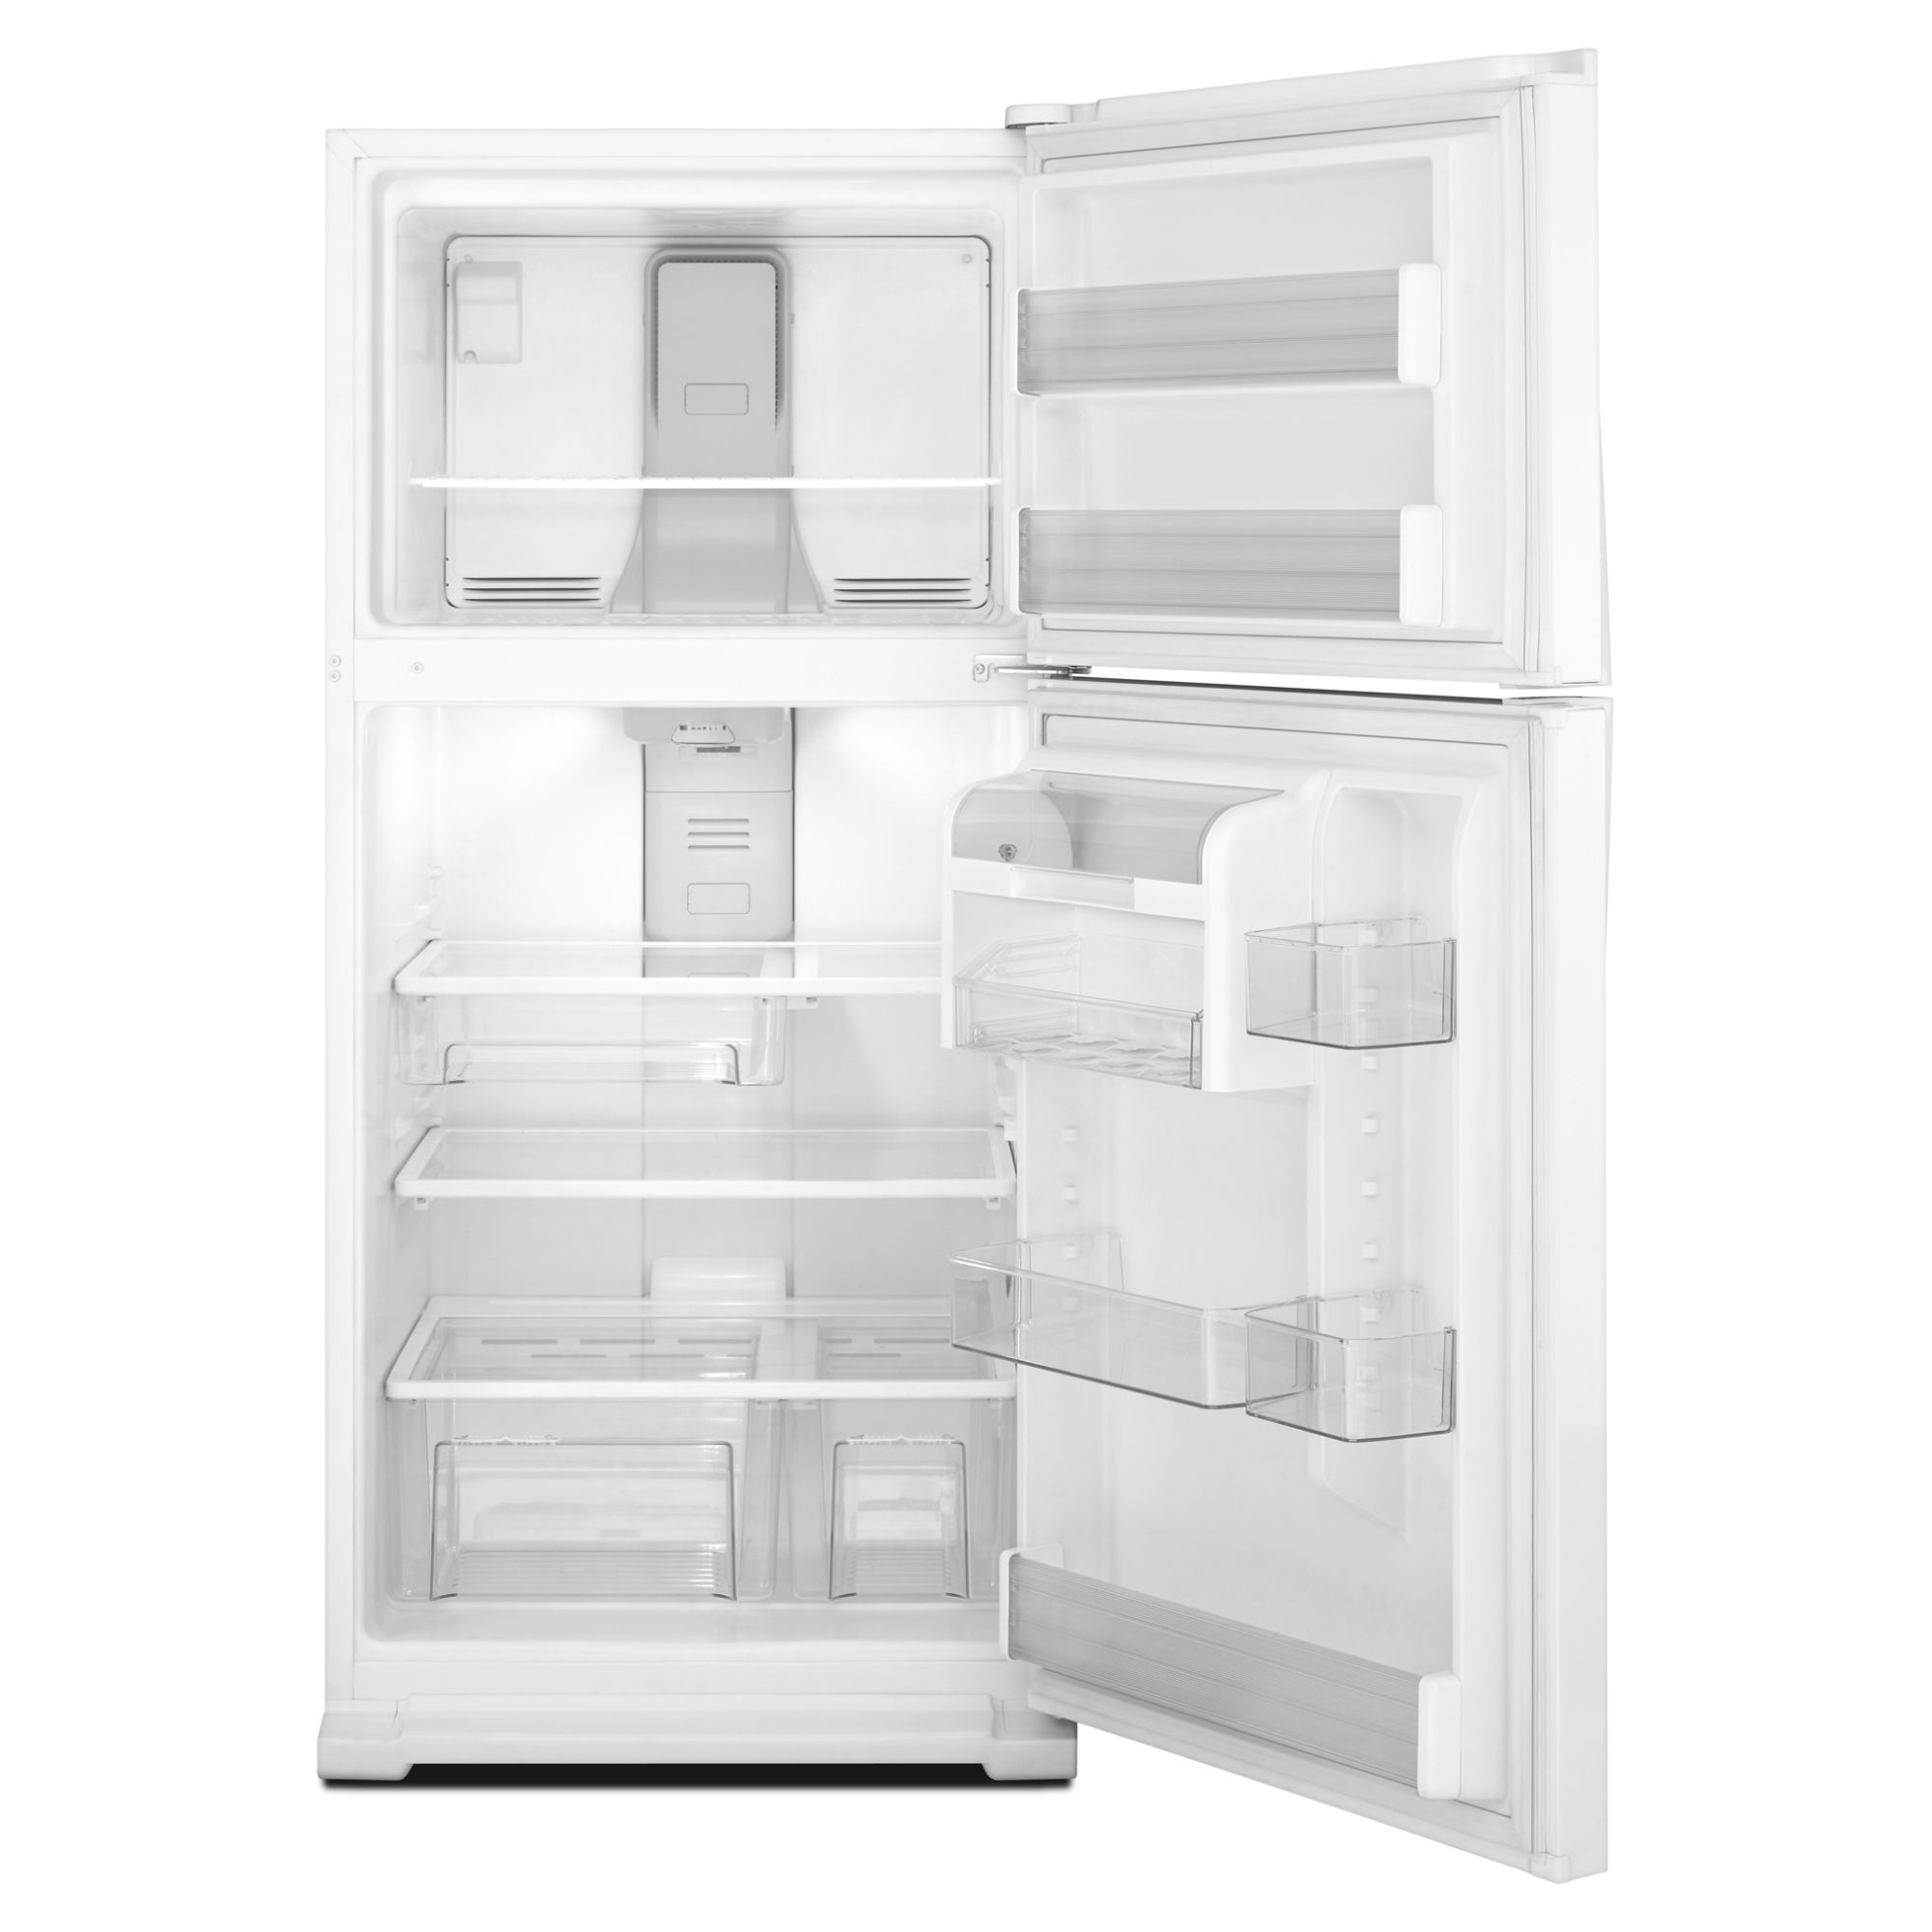 Whirlpool 20.6 cu. ft. Top-Freezer Refrigerator w/ Condiment Caddy - White